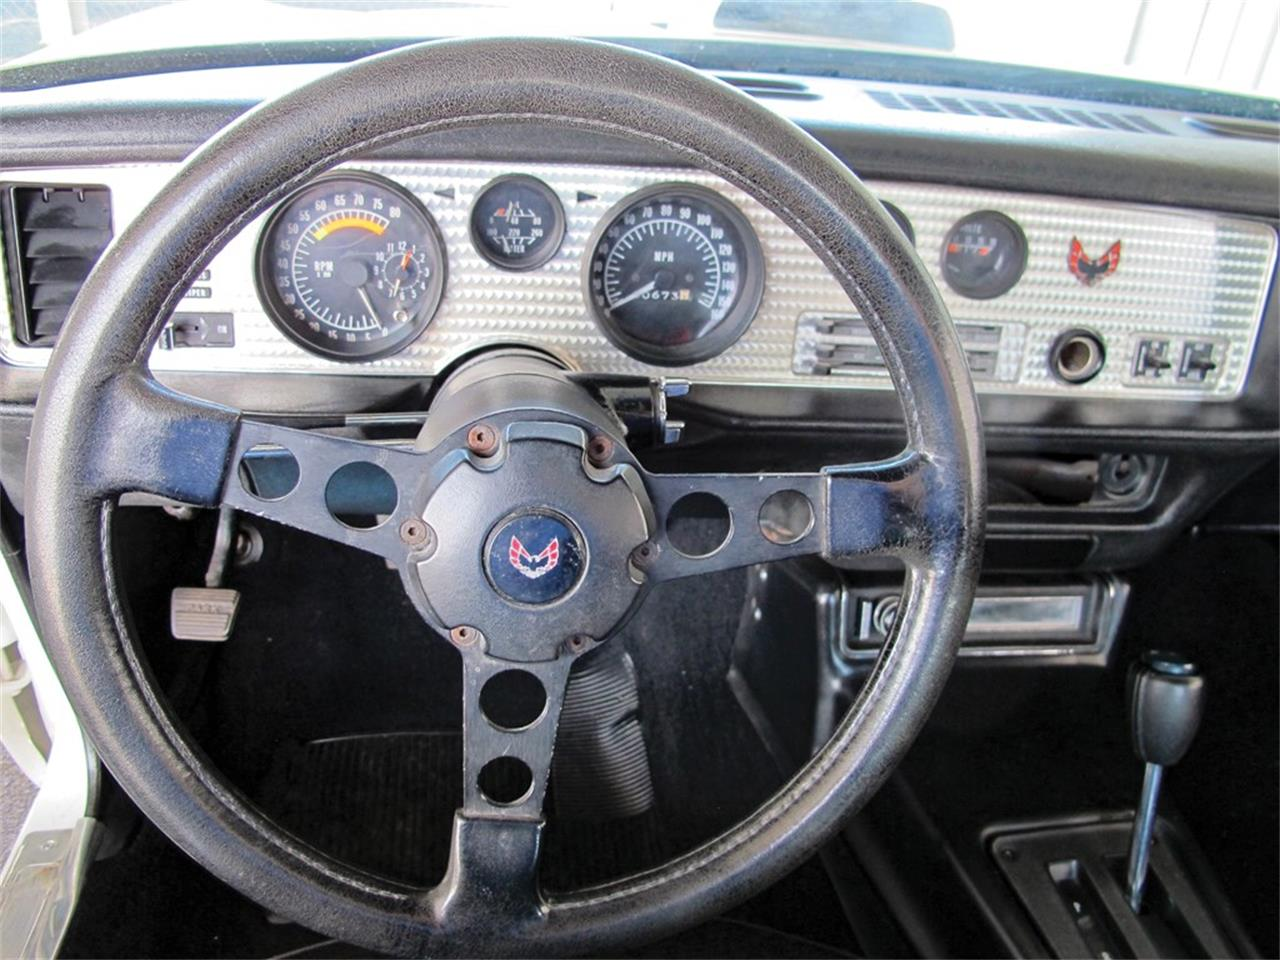 1974 Pontiac Firebird Trans Am for sale in Fort Lauderdale, FL – photo 8